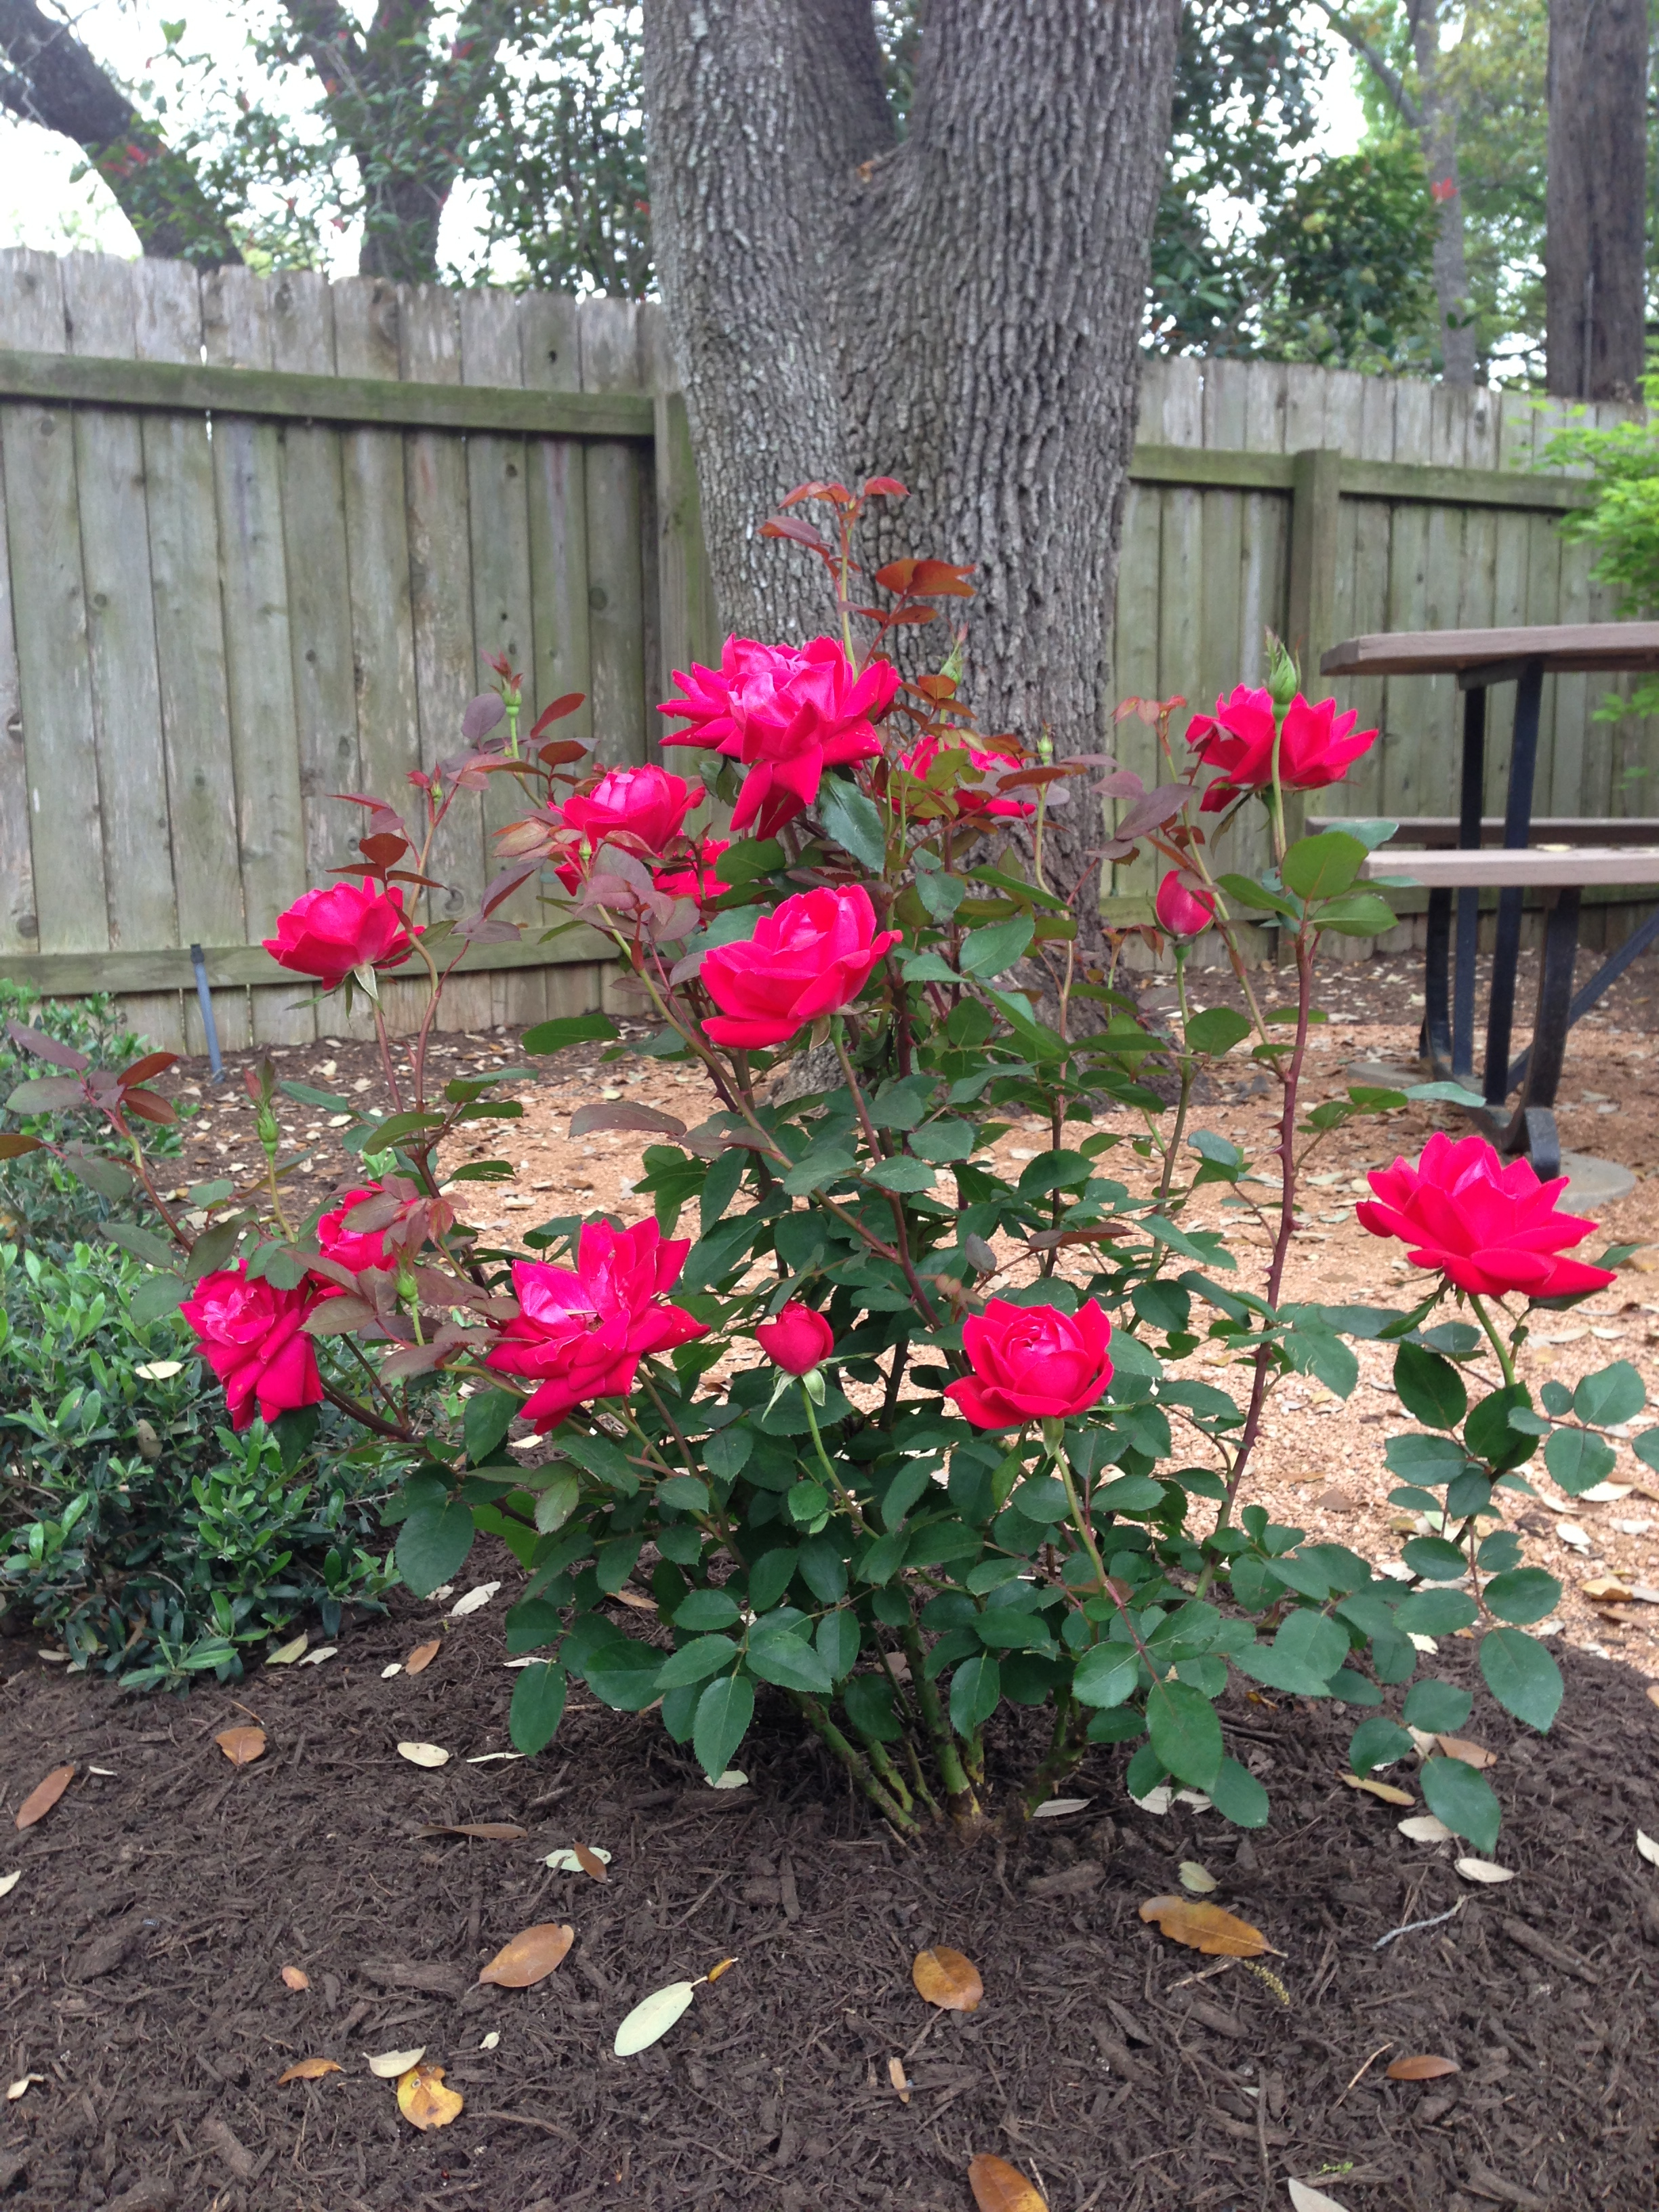 How to trim a rose bush - Knockout Roses